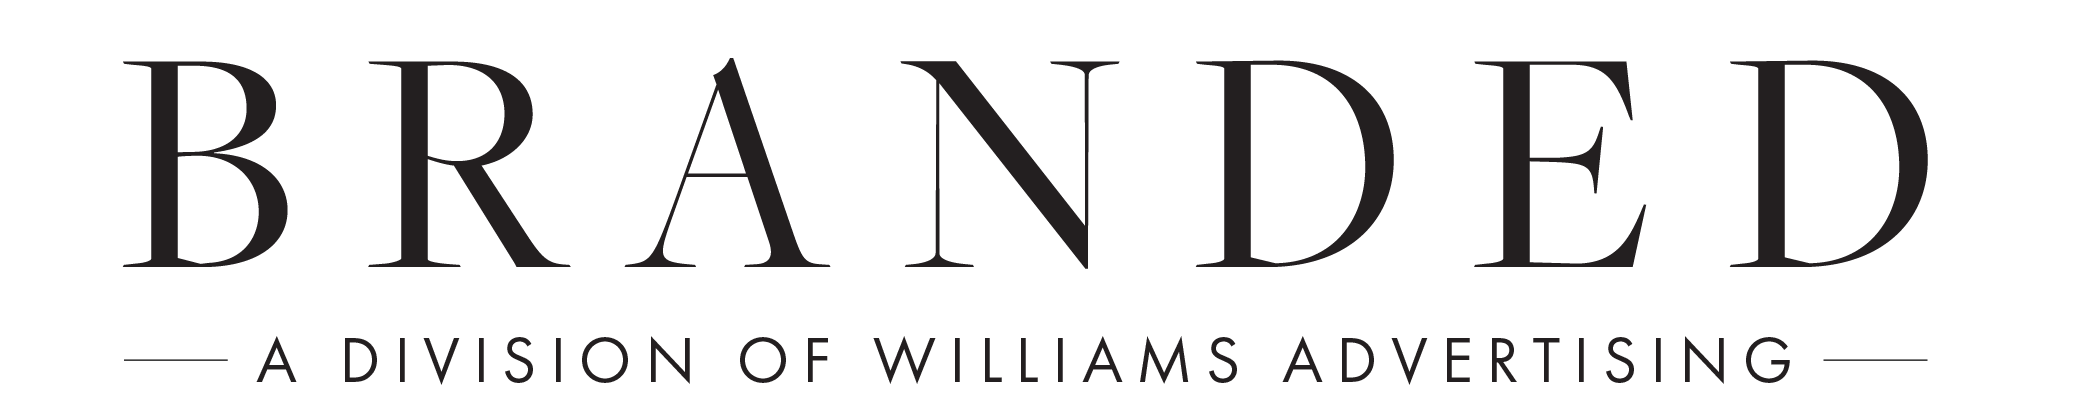 Branded Merchandise Williams Advertising